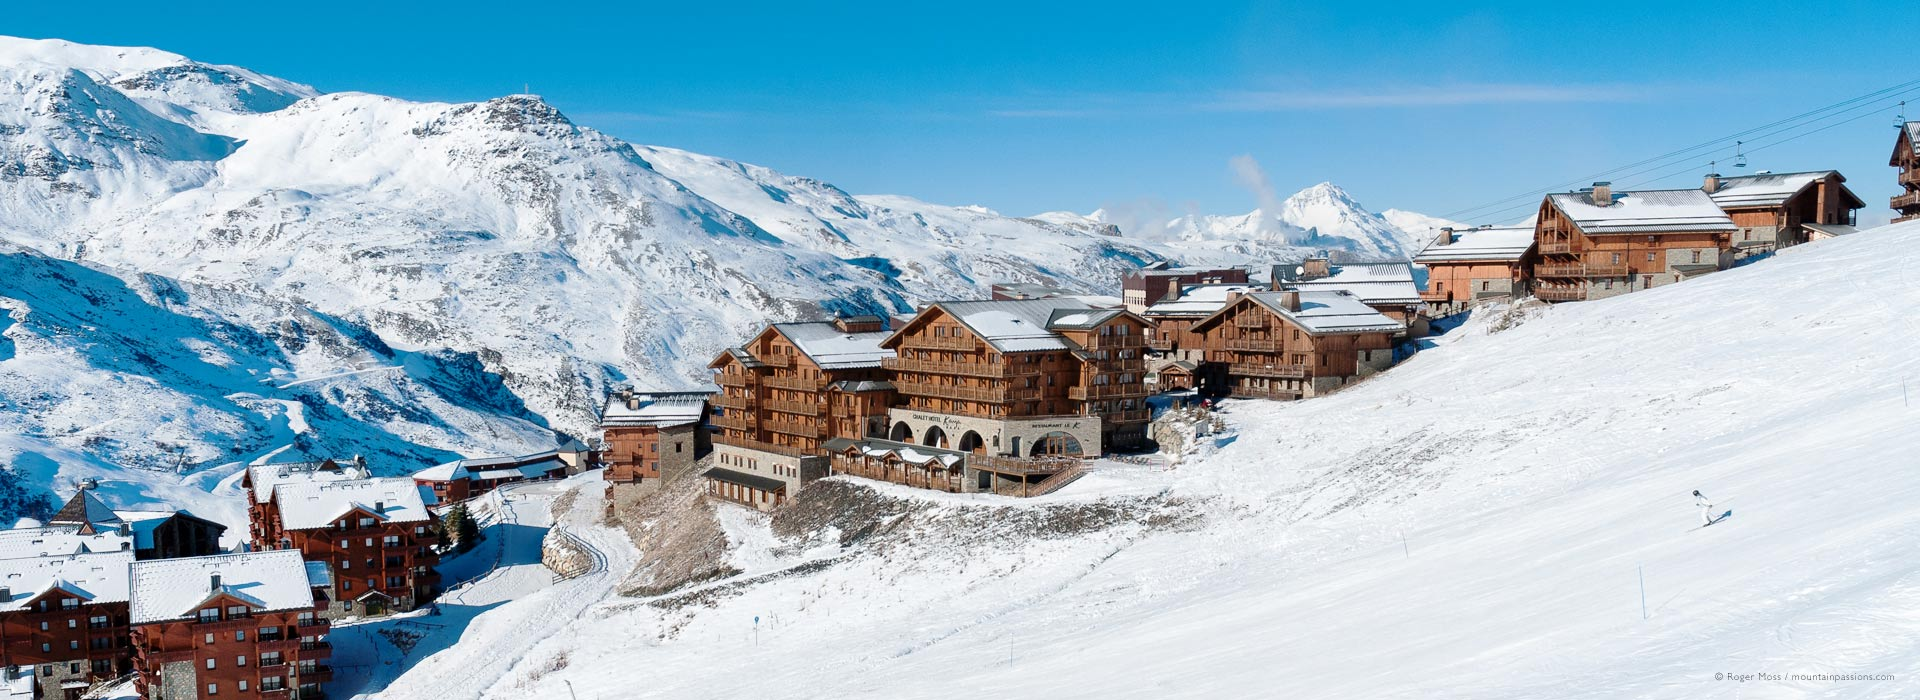 View of chalets at Les Menuires ski resort with snow-covered mountainside, 3 Valleys, French Alps.